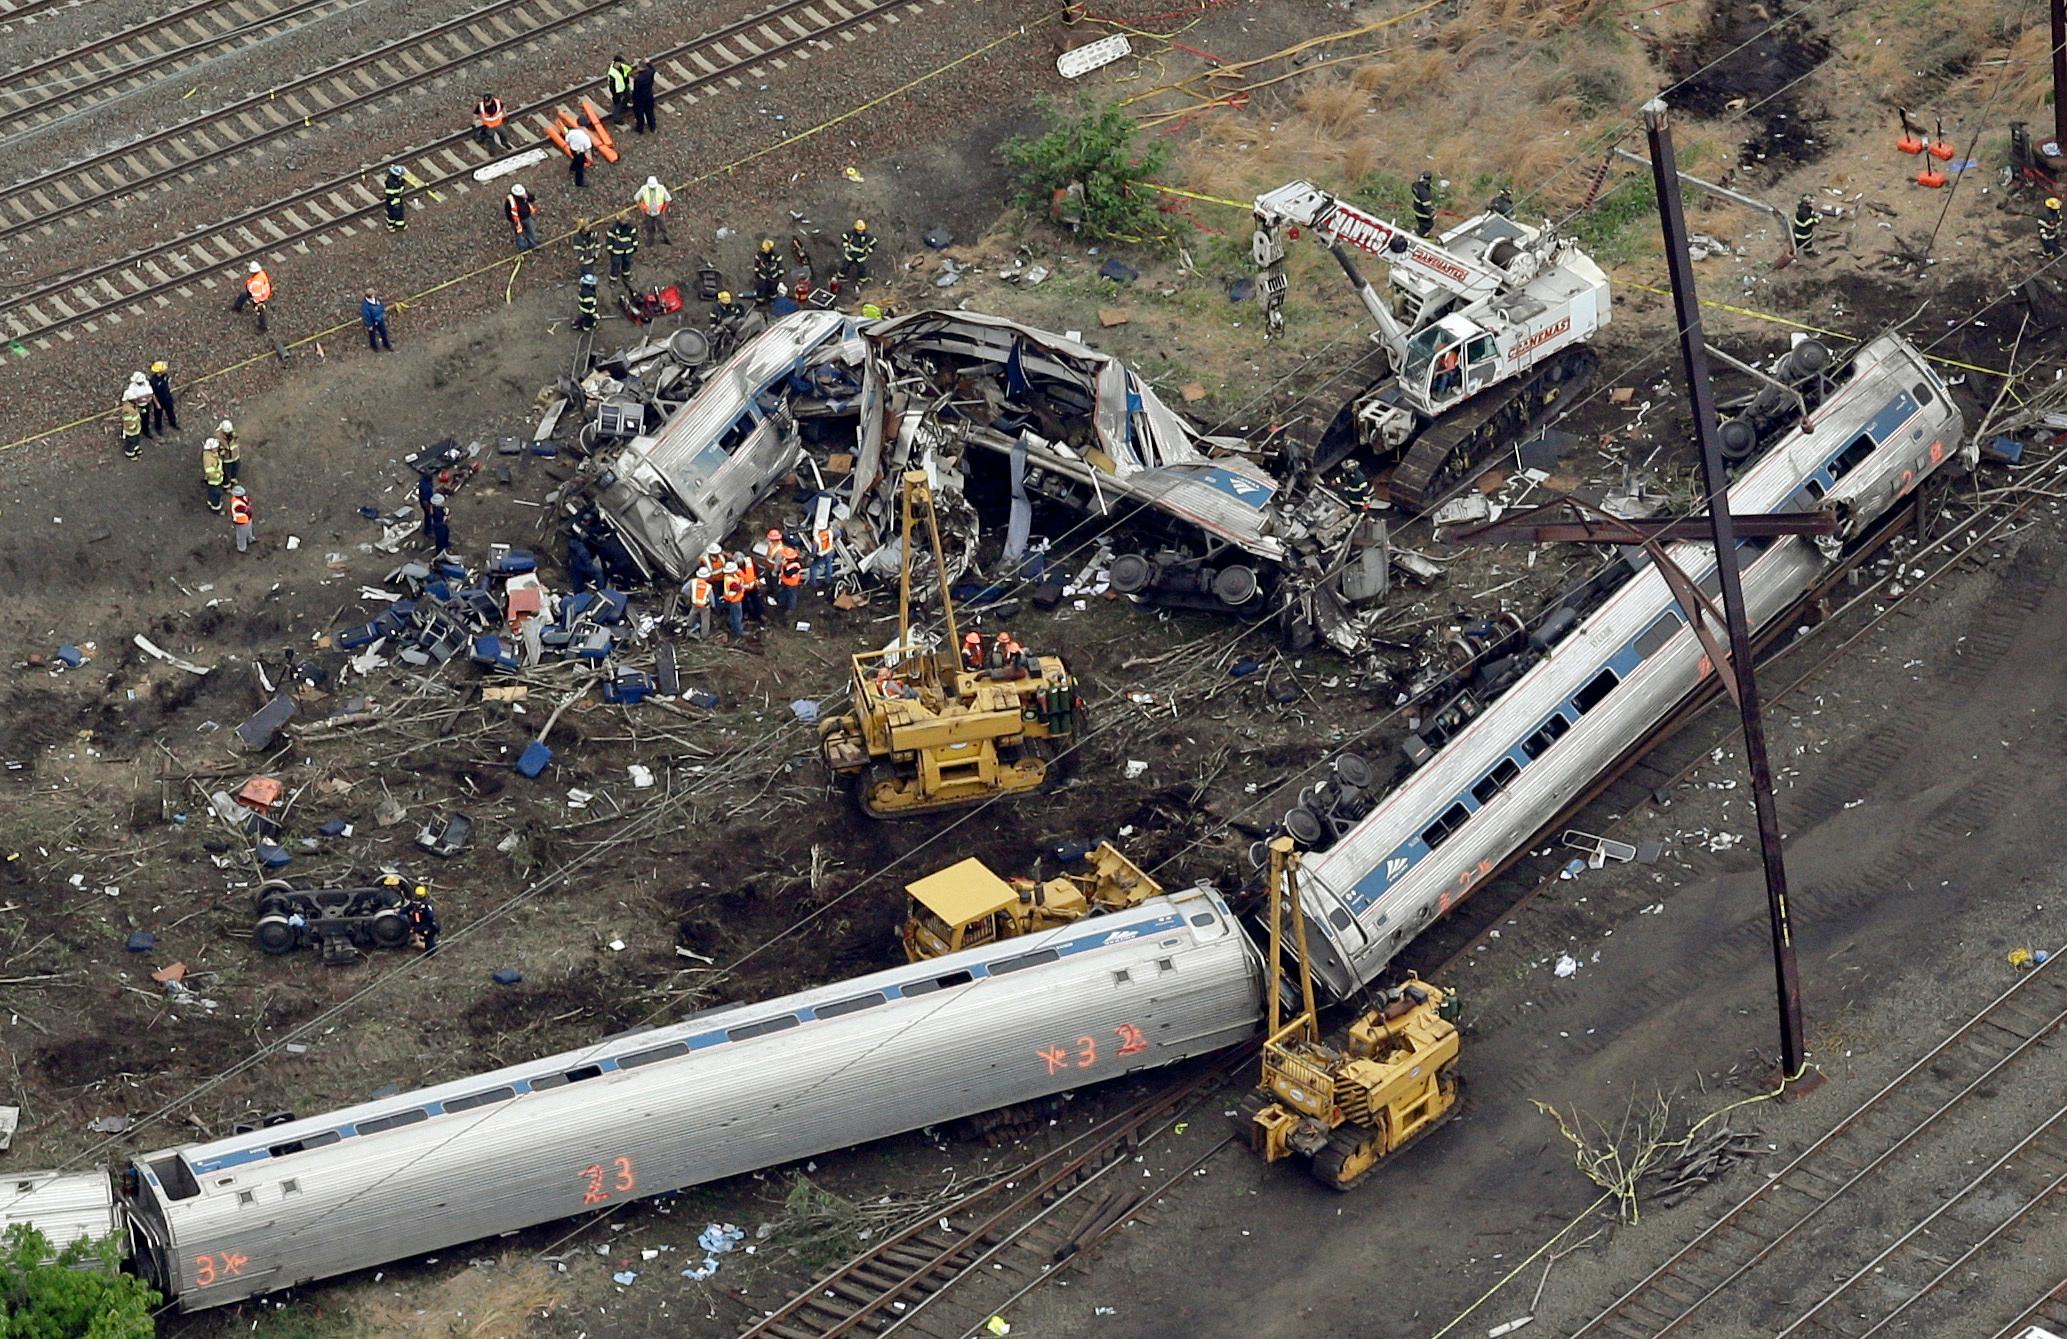 FILE - In this May 13, 2015, file photo, emergency personnel work at the scene of a derailment in Philadelphia of an Amtrak train headed to New York. (AP Photo/Patrick Semansky, File)<p></p>